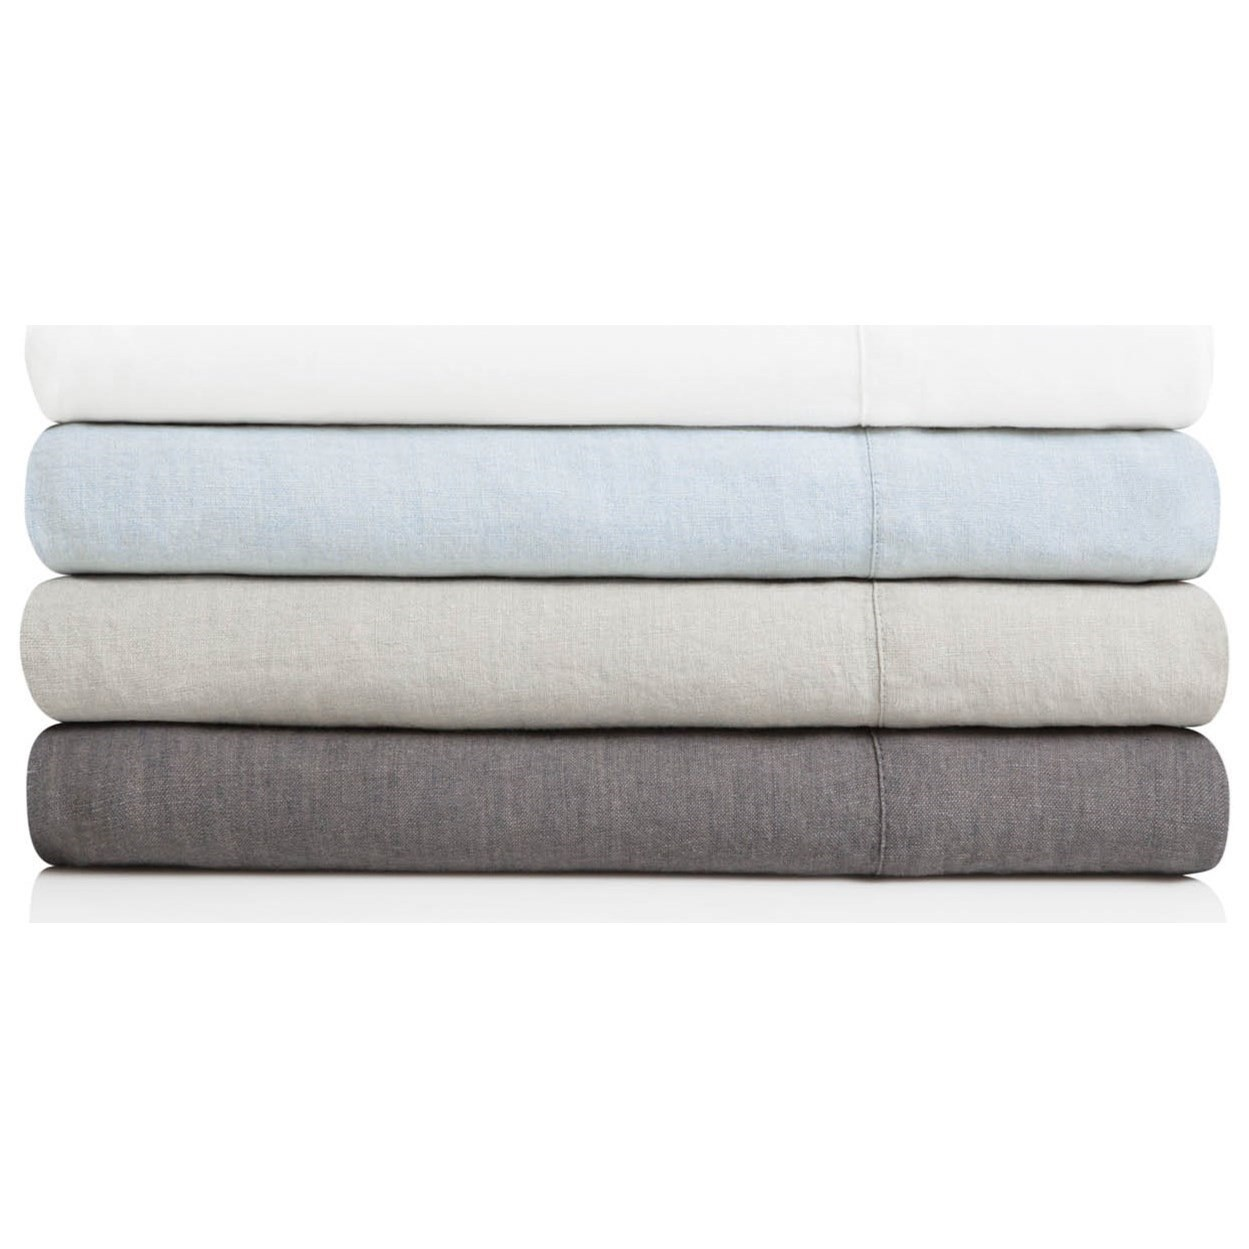 French Linen Split King 100% French Linen Sheet Set by Malouf at Northeast Factory Direct